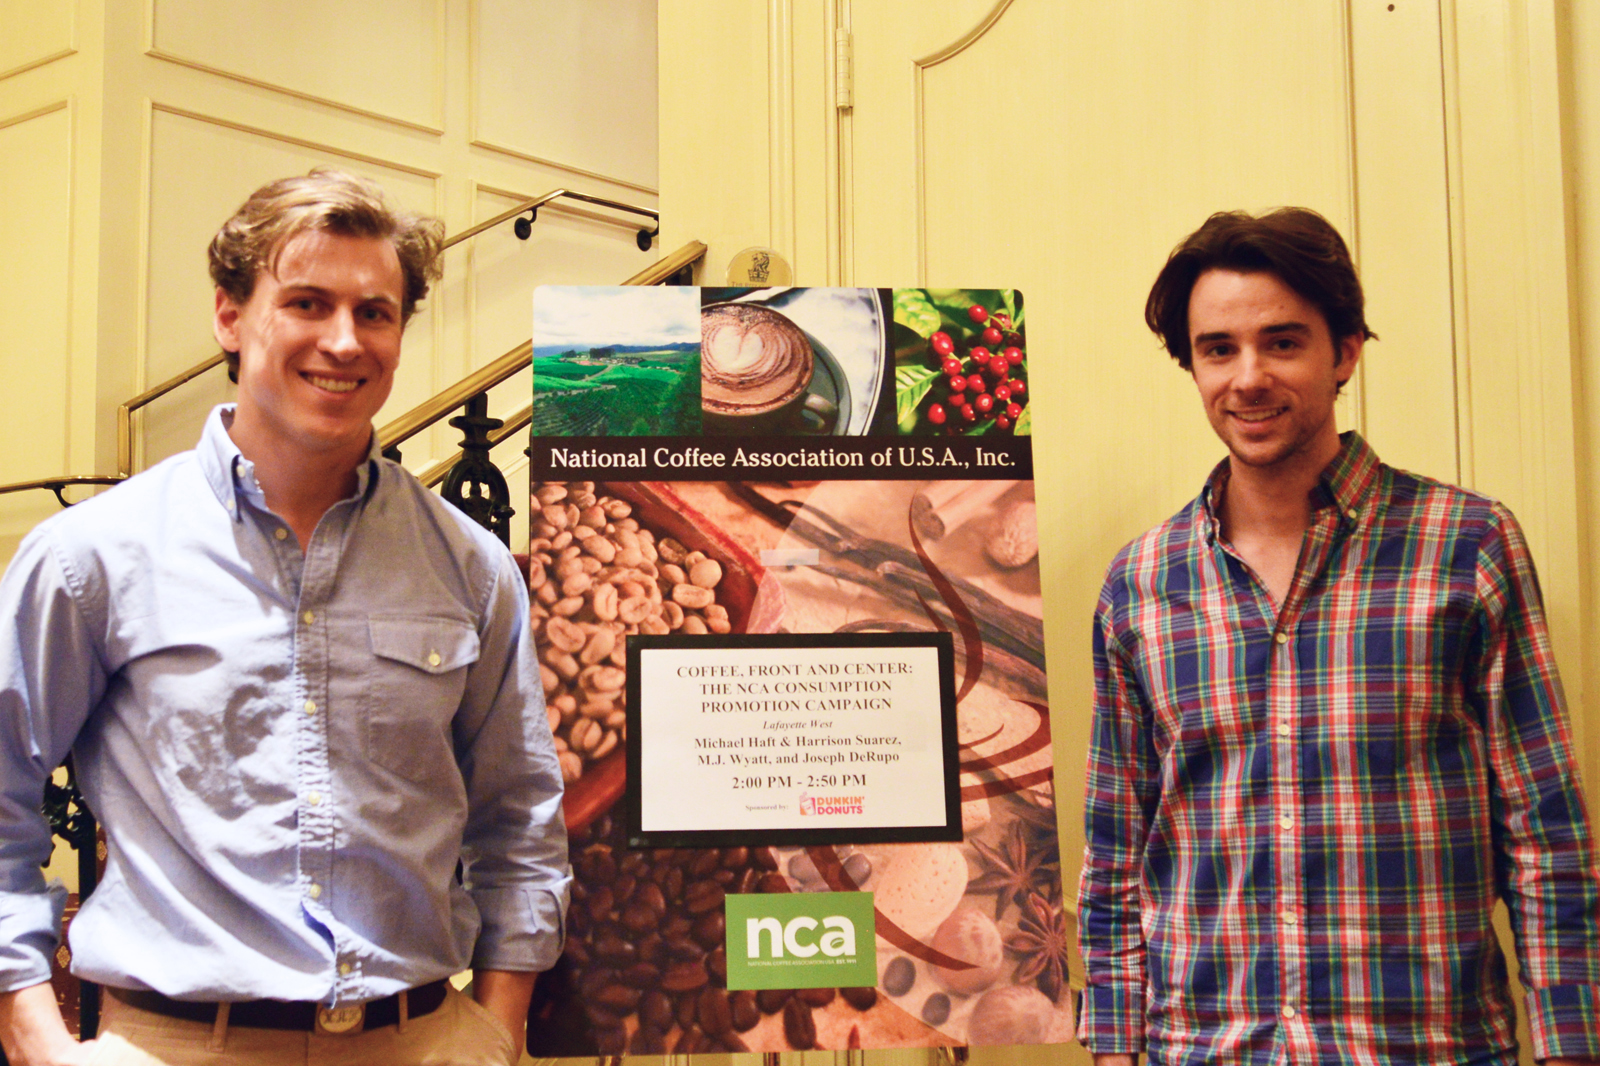 Michael Haft and Harrison Suarez before speaking at the National Coffee Association